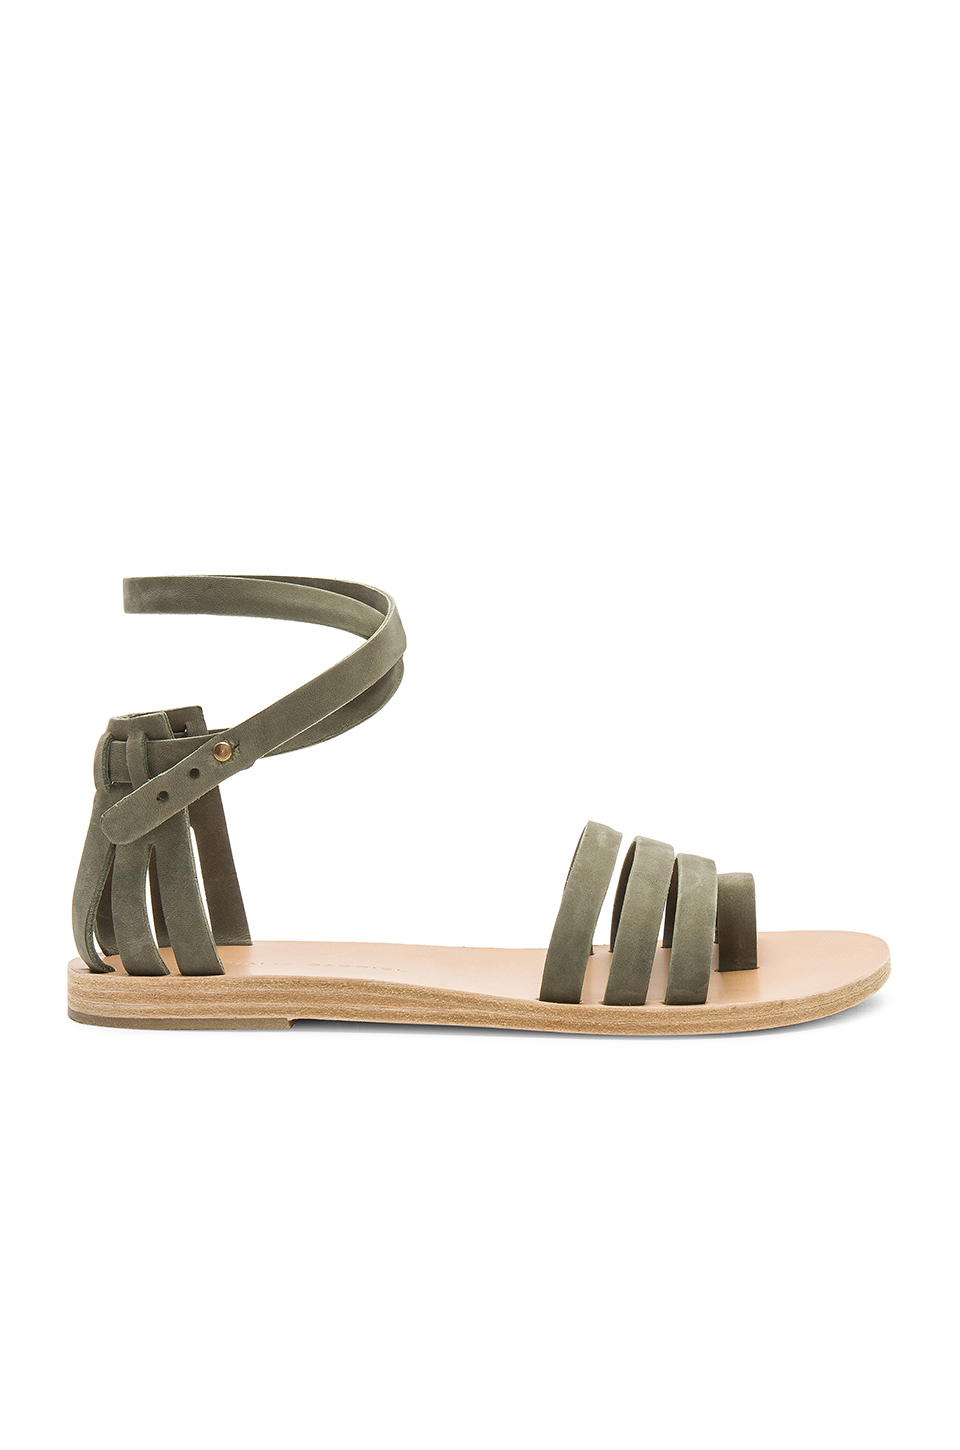 Valia Gabriel Meadow Sandal in Military Green Nubuck